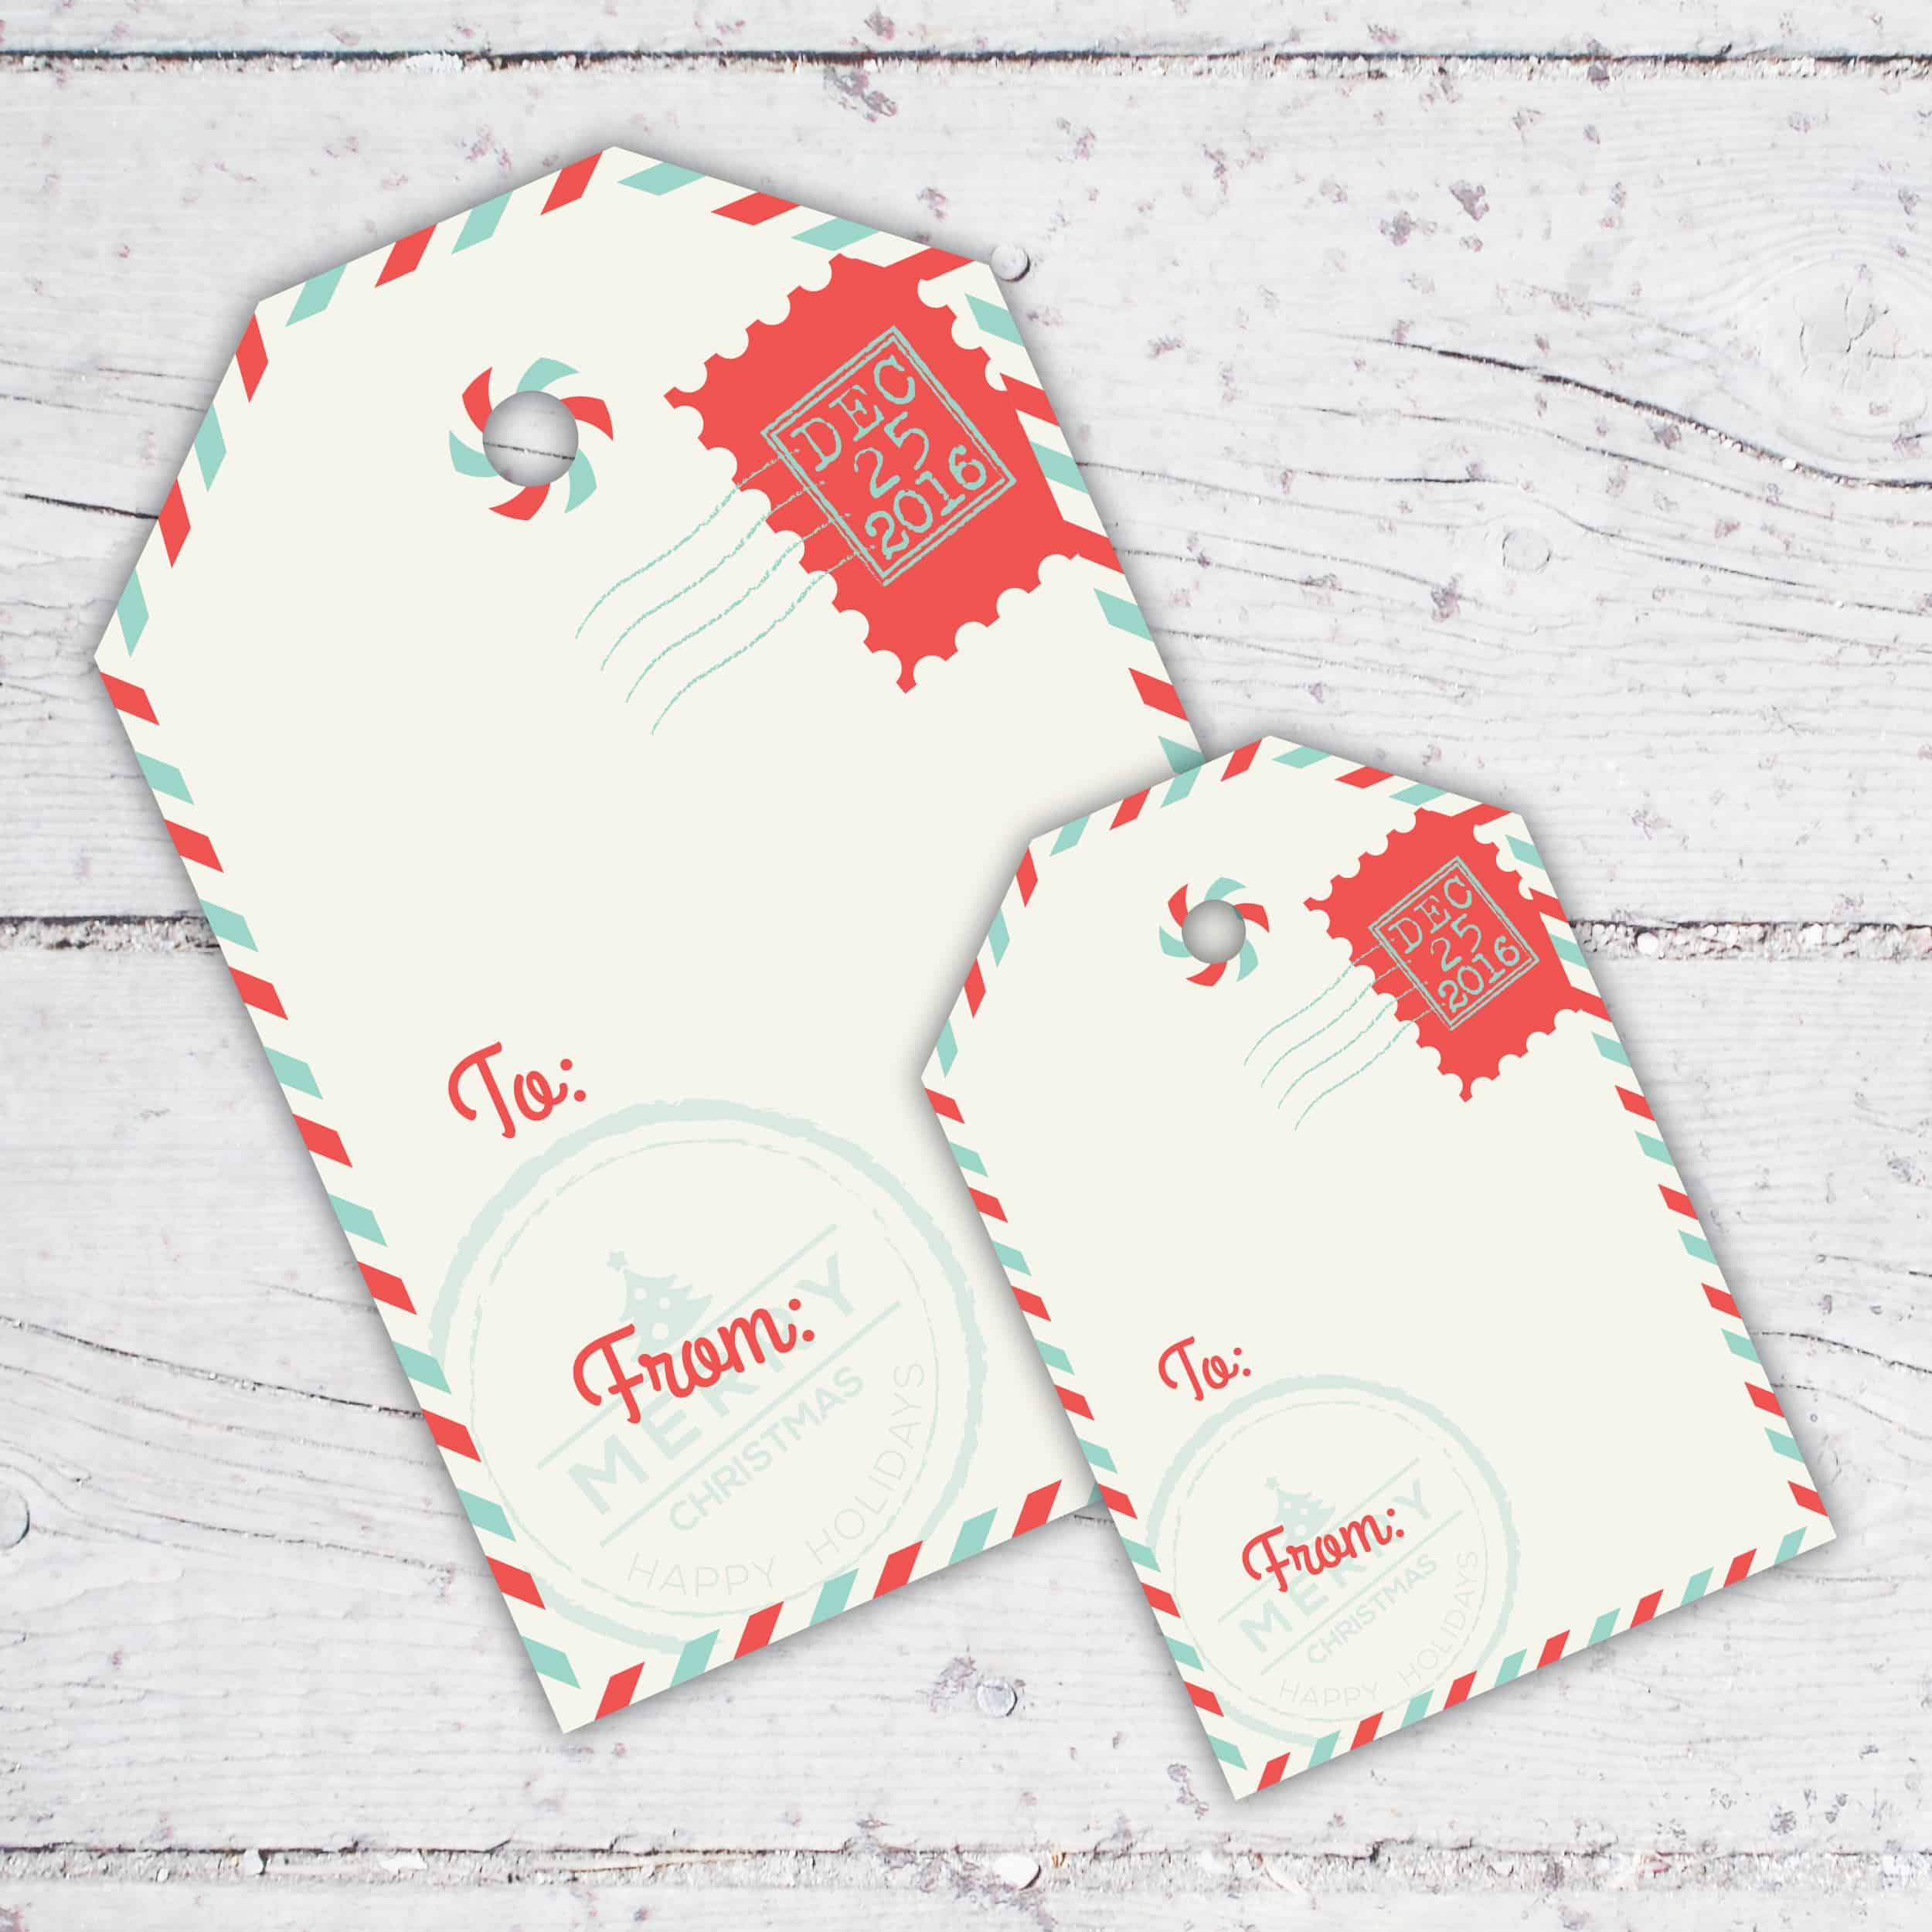 Special Delivery Christmas Gift Tags | 3 inch & 4.5 inch | Print-It-Yourself | Digital Download | Printable | Santa Claus Is Coming To Town